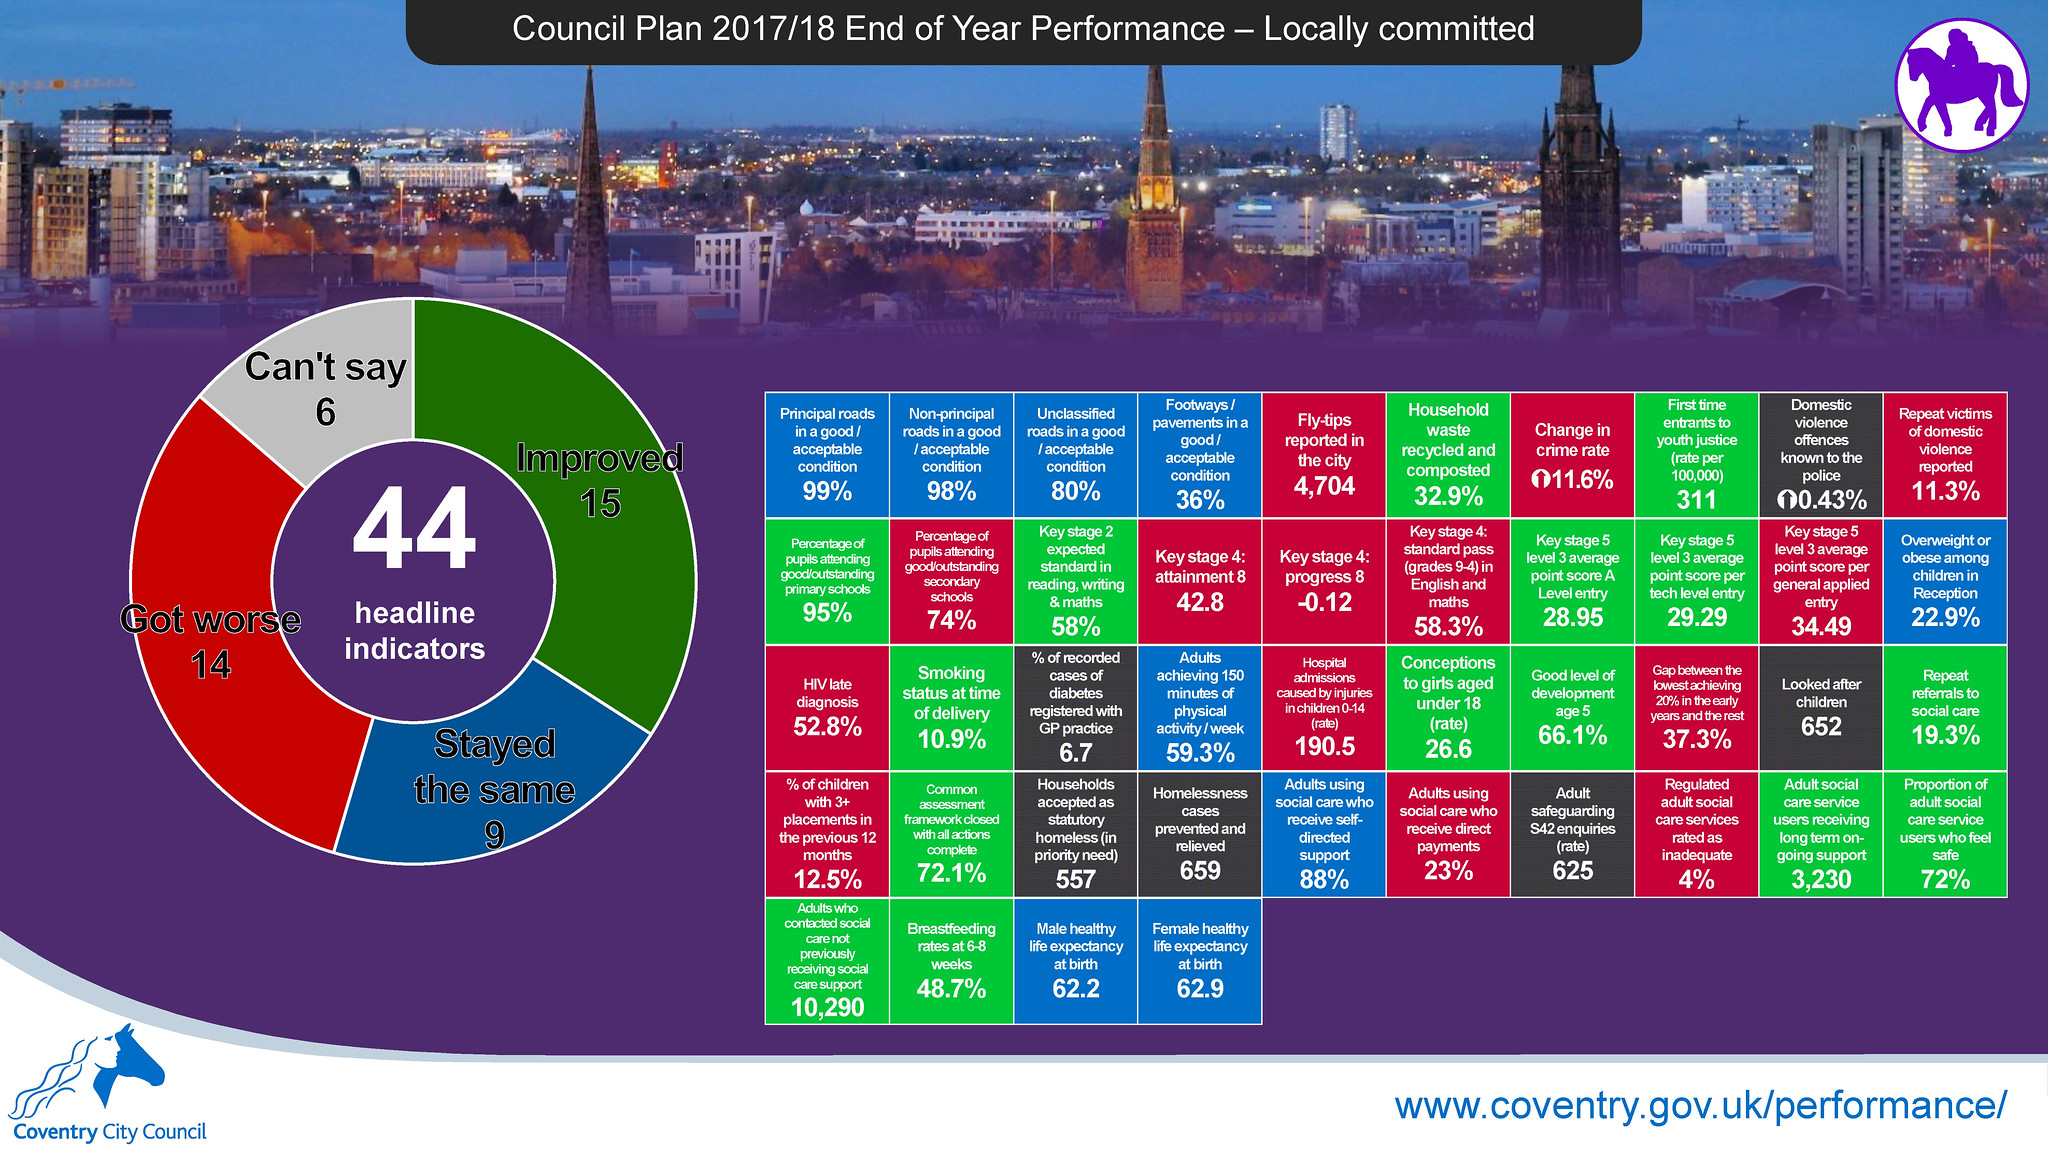 Locally committed (continued) - Council Plan 2017-18 end of year performance report infographic - Coventry City Council